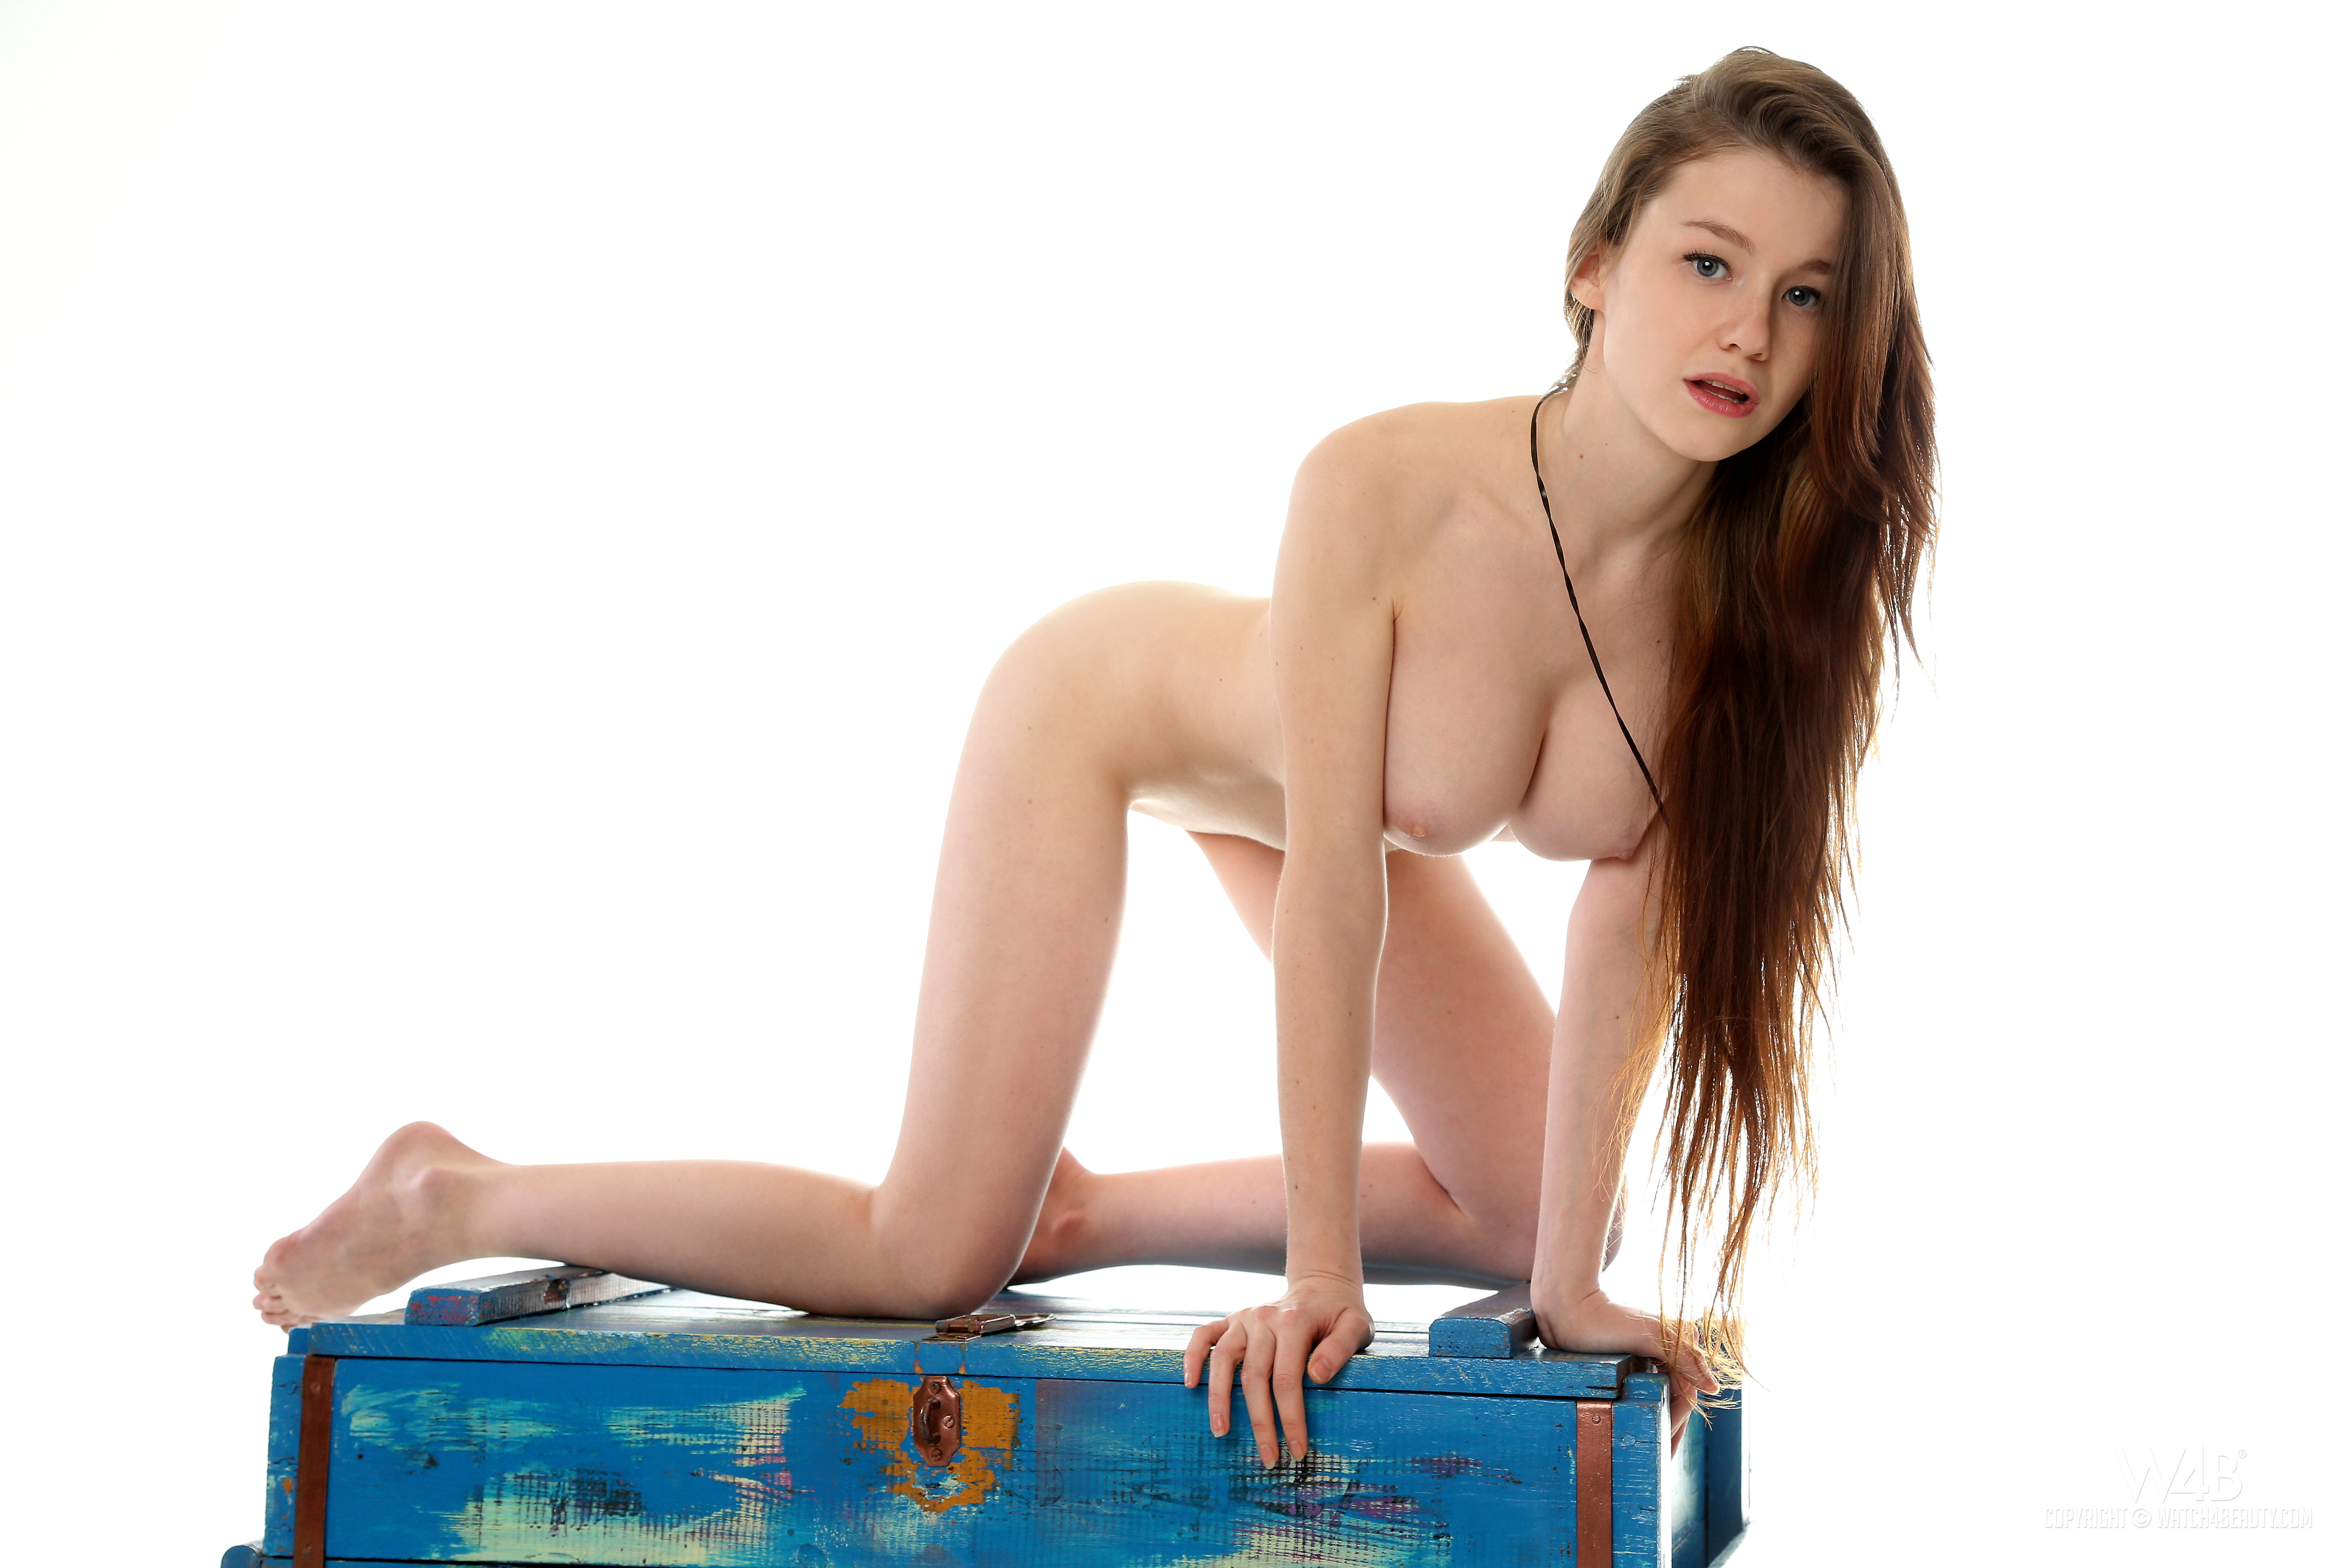 emily anne nude